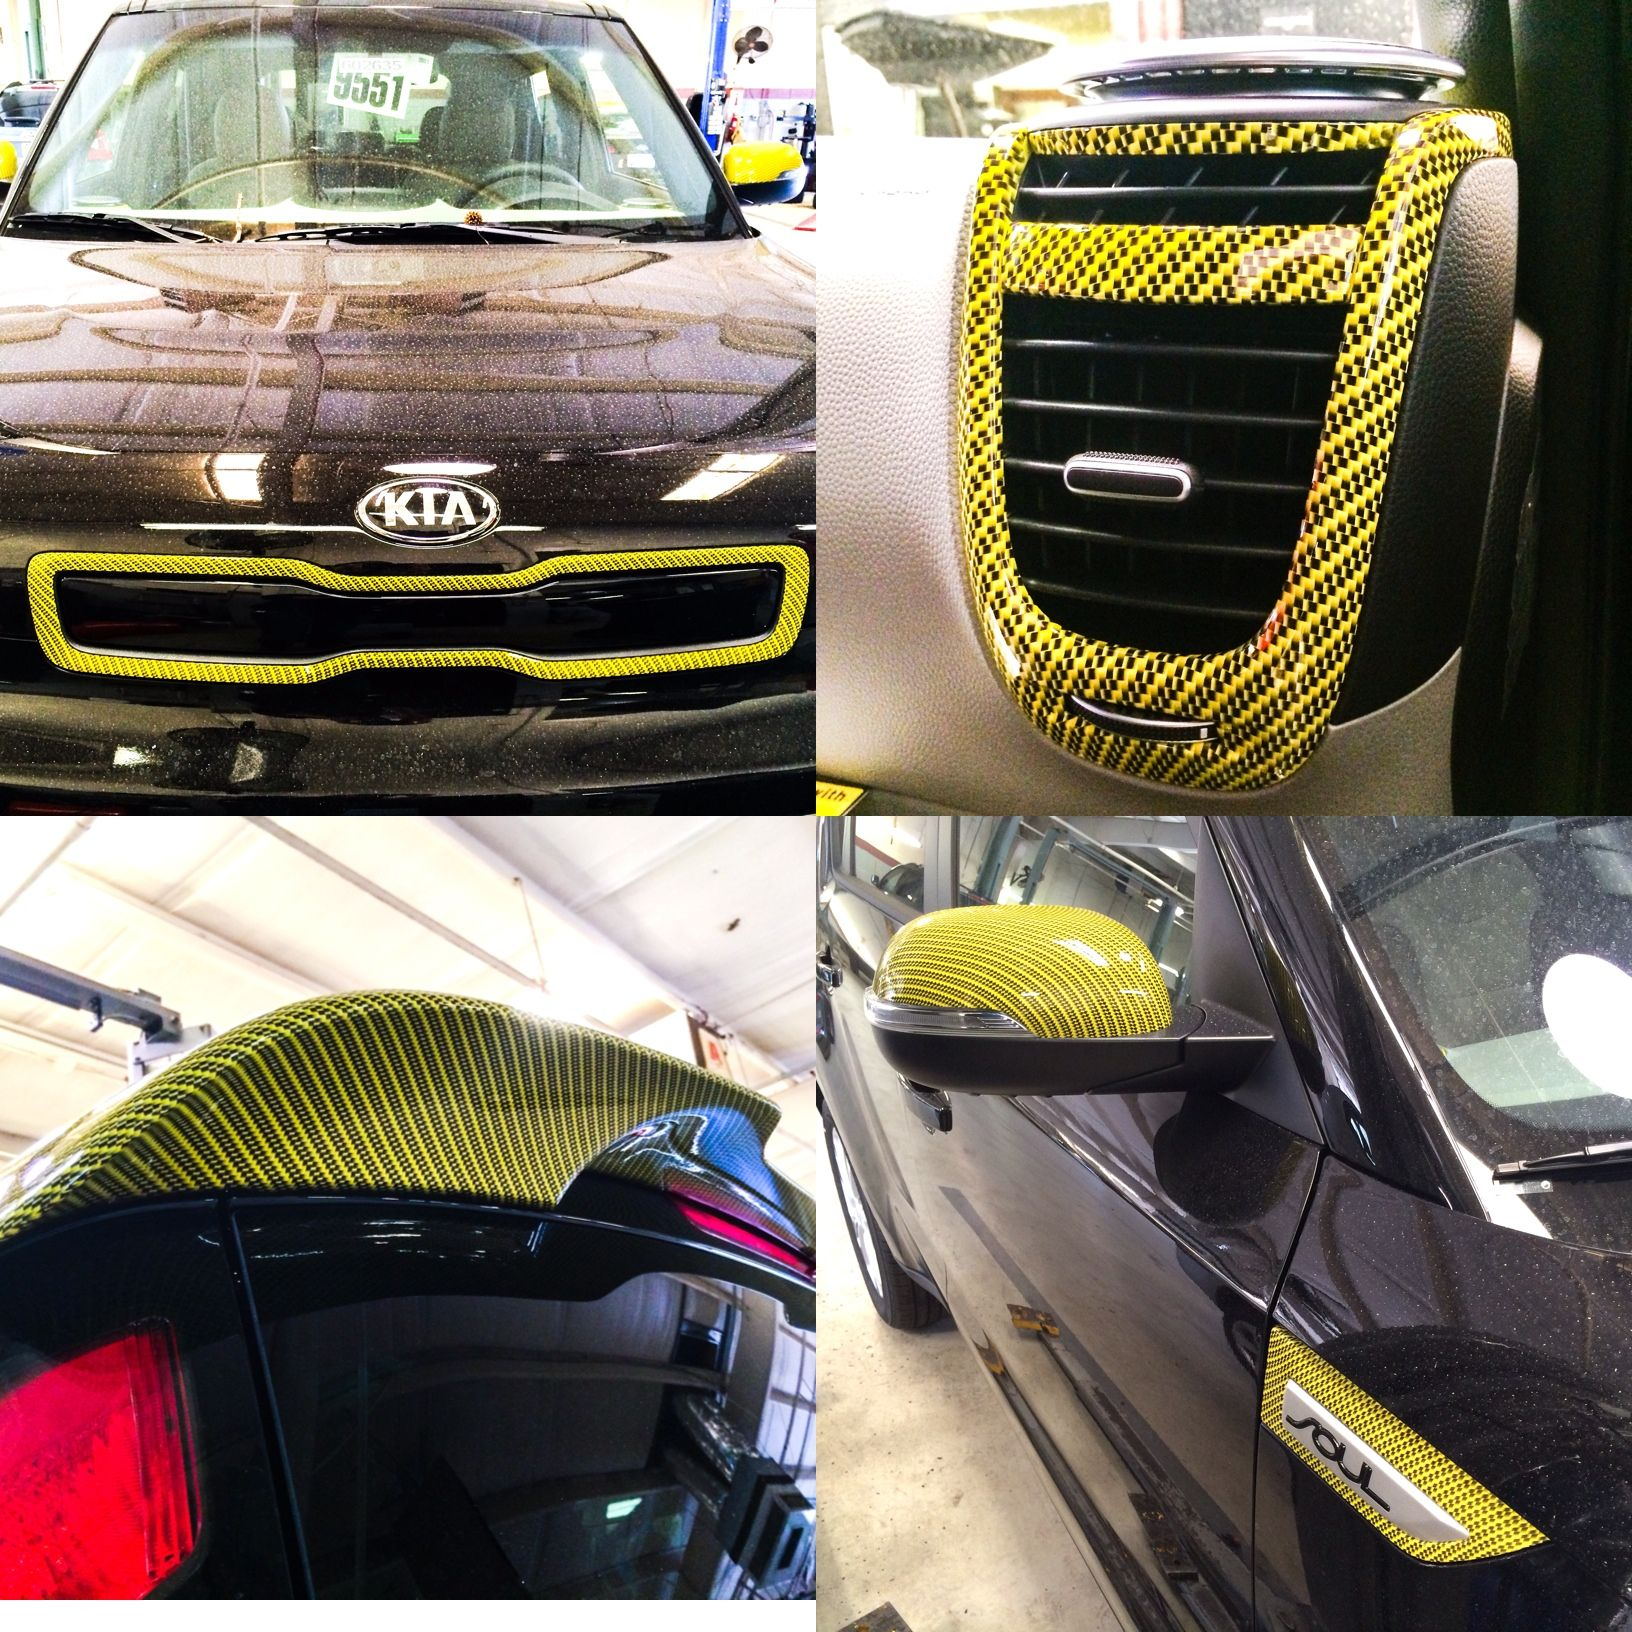 Ed Voyles Kia Home: Customize Your Kia Soul At Ed Voyles Kia Of Chamblee With